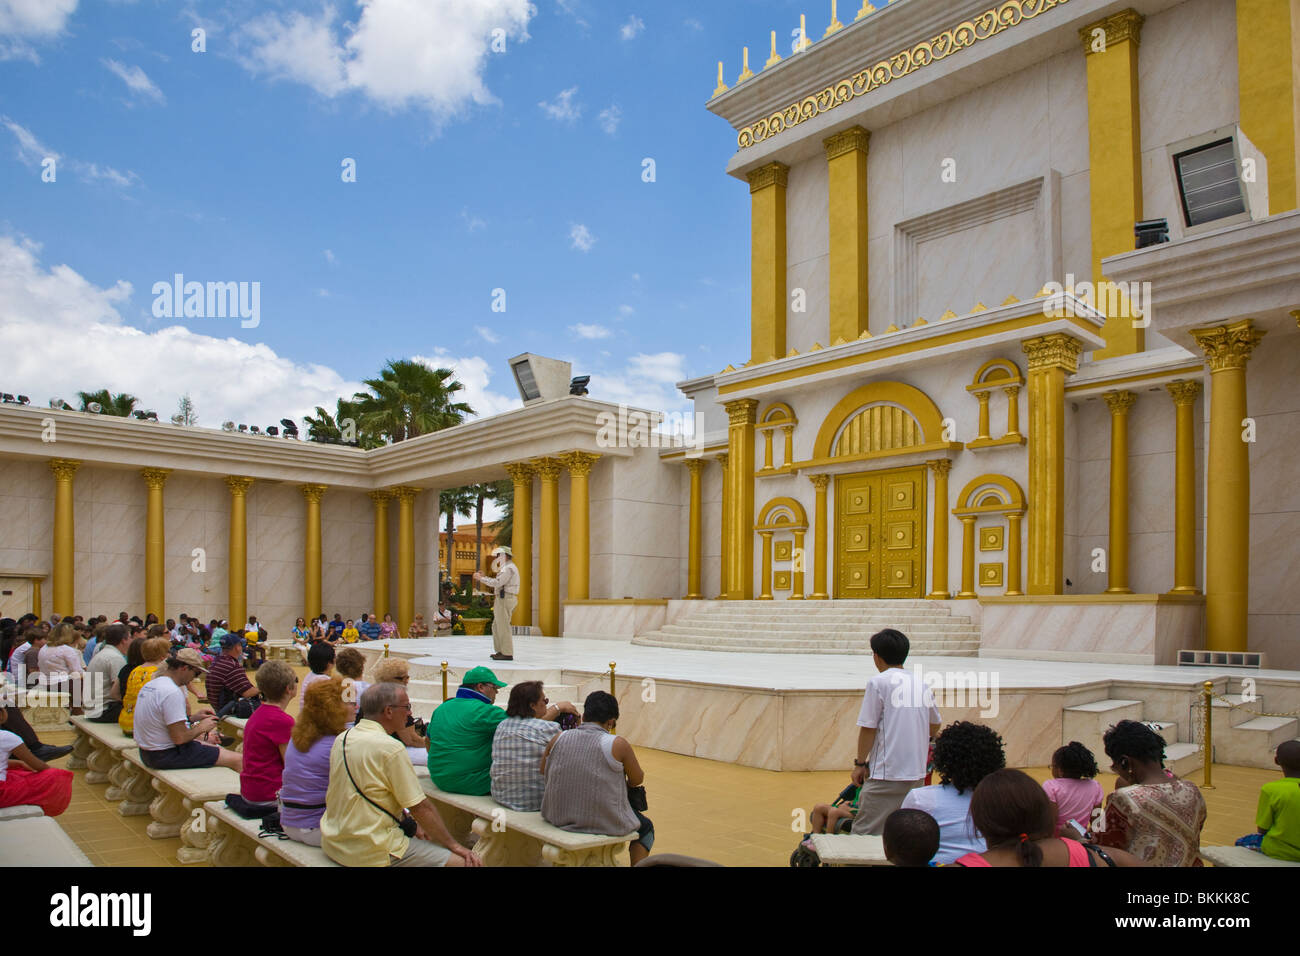 Holy Land Experience attraction in Orlando Florida - Stock Image